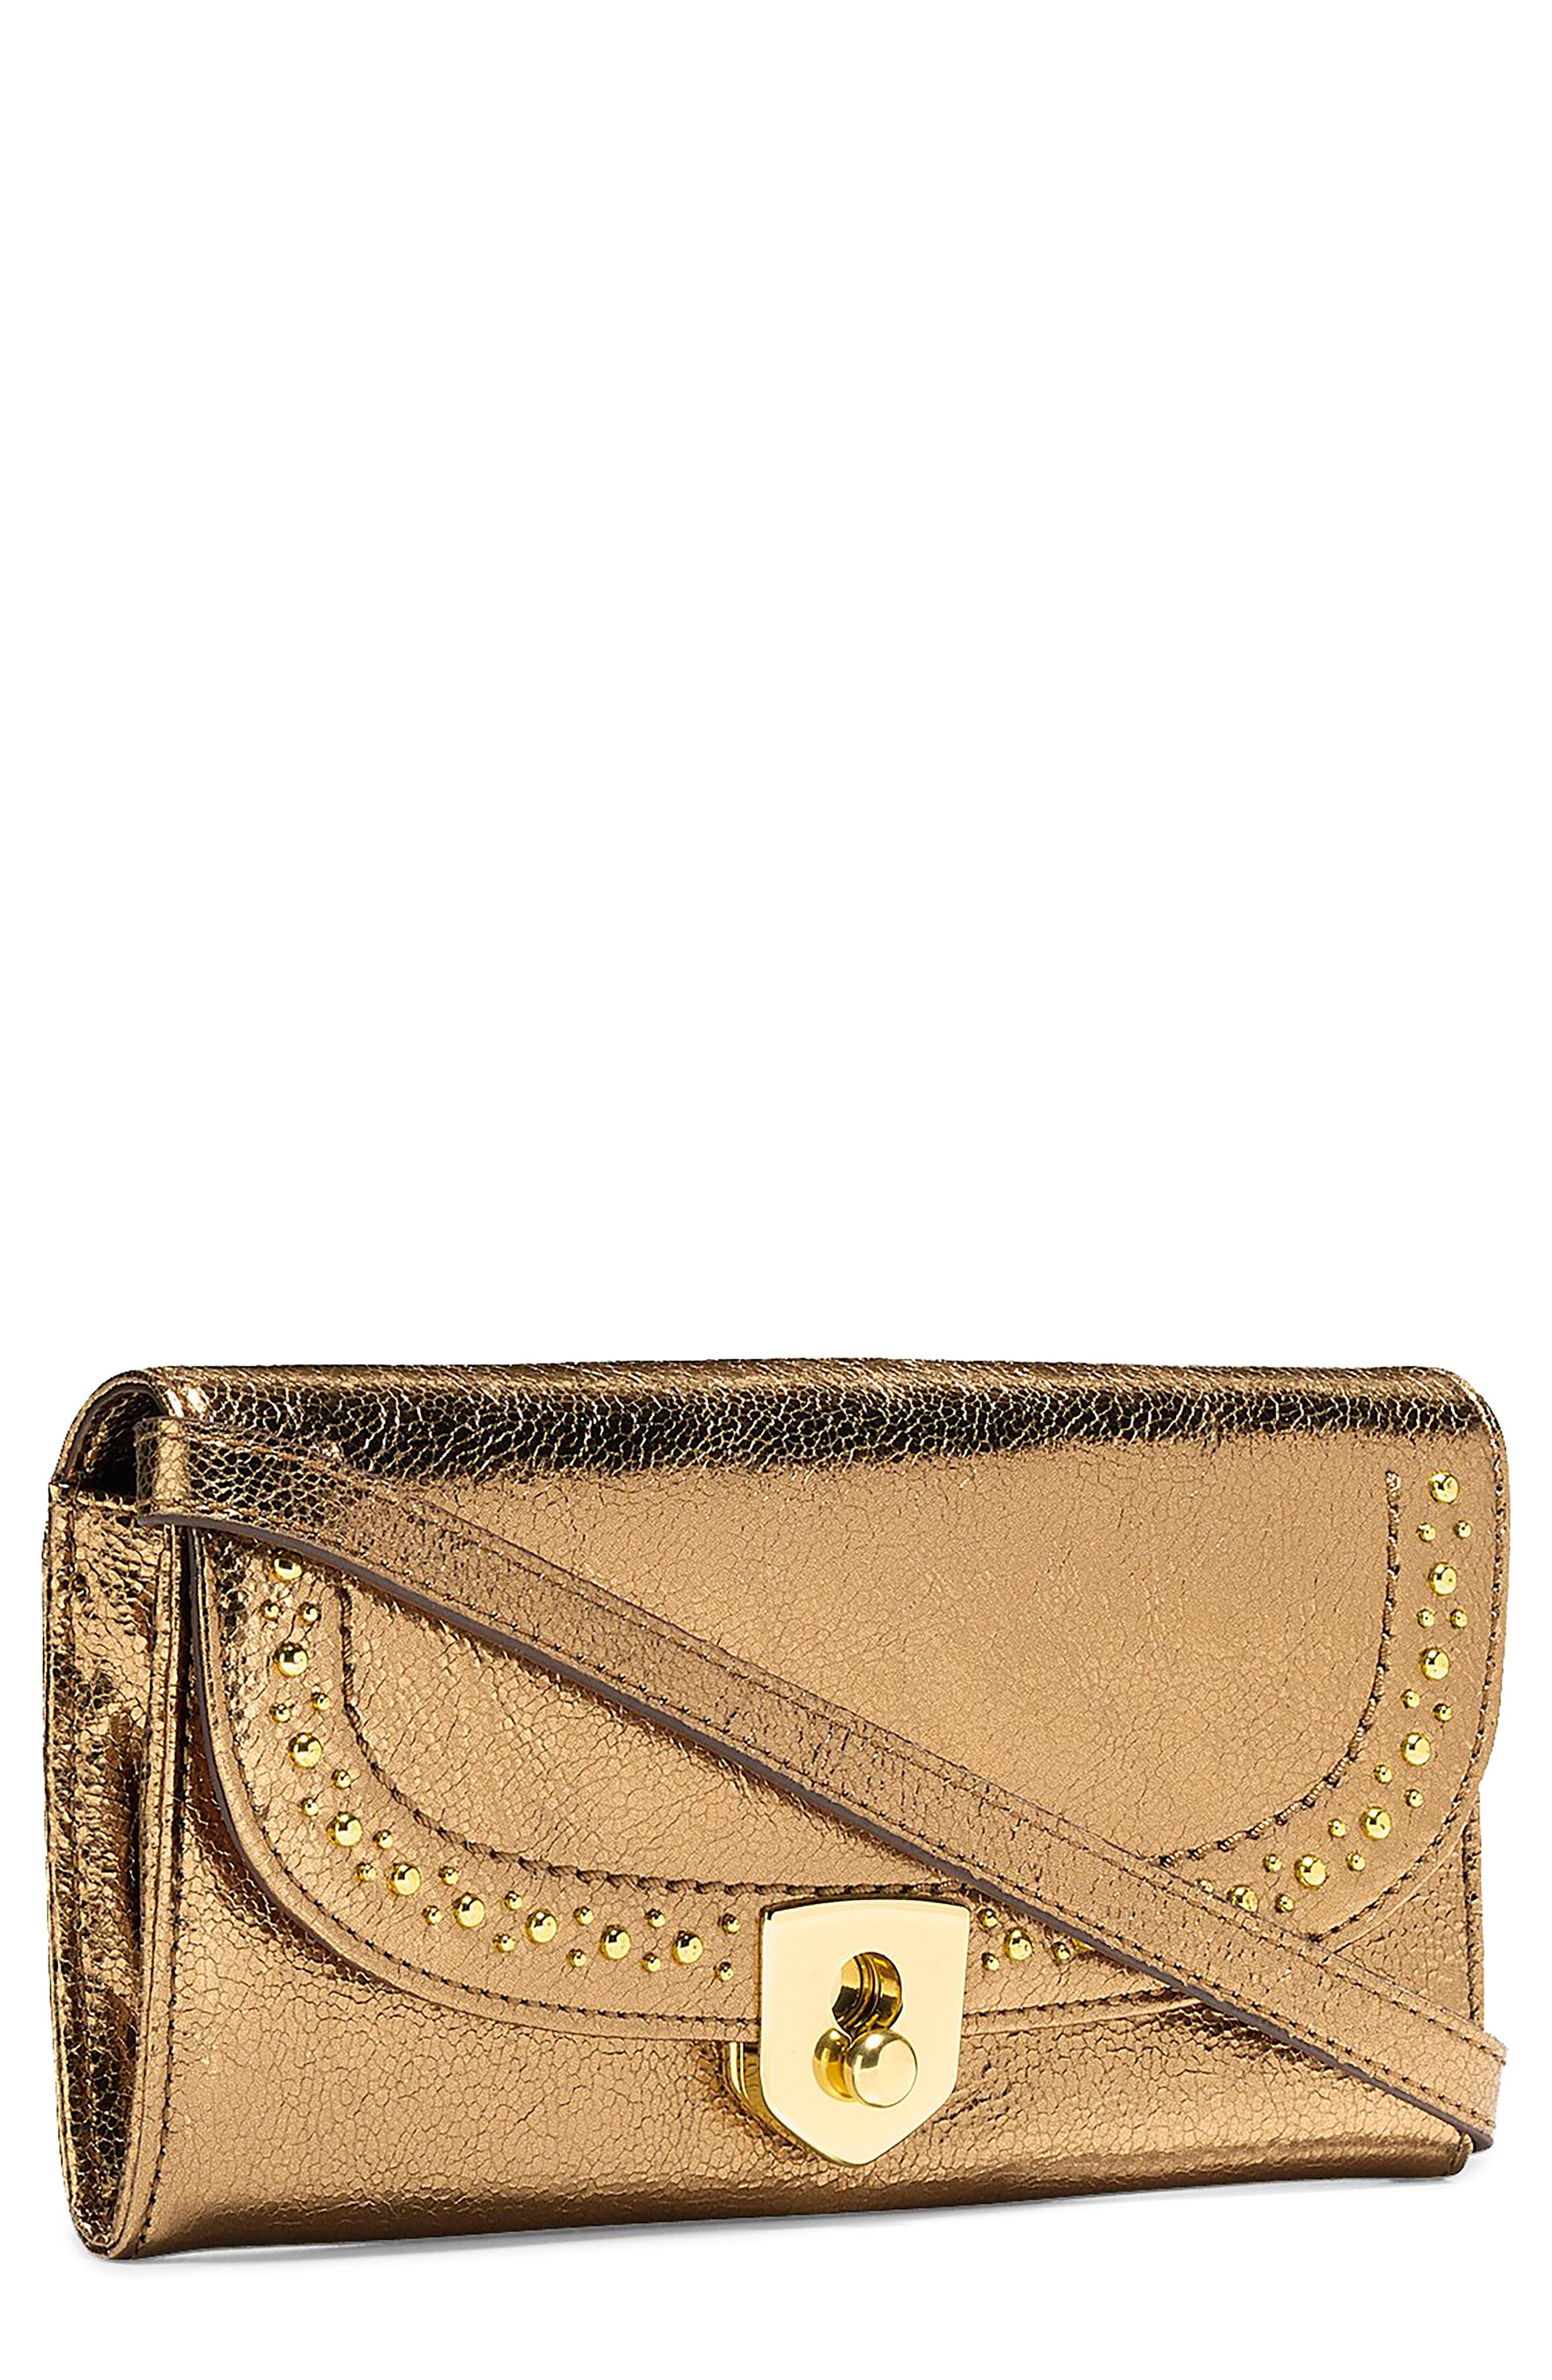 Alternate Image 1 Selected - Cole Haan Marli Studded Metallic Leather Convertible Smartphone Clutch